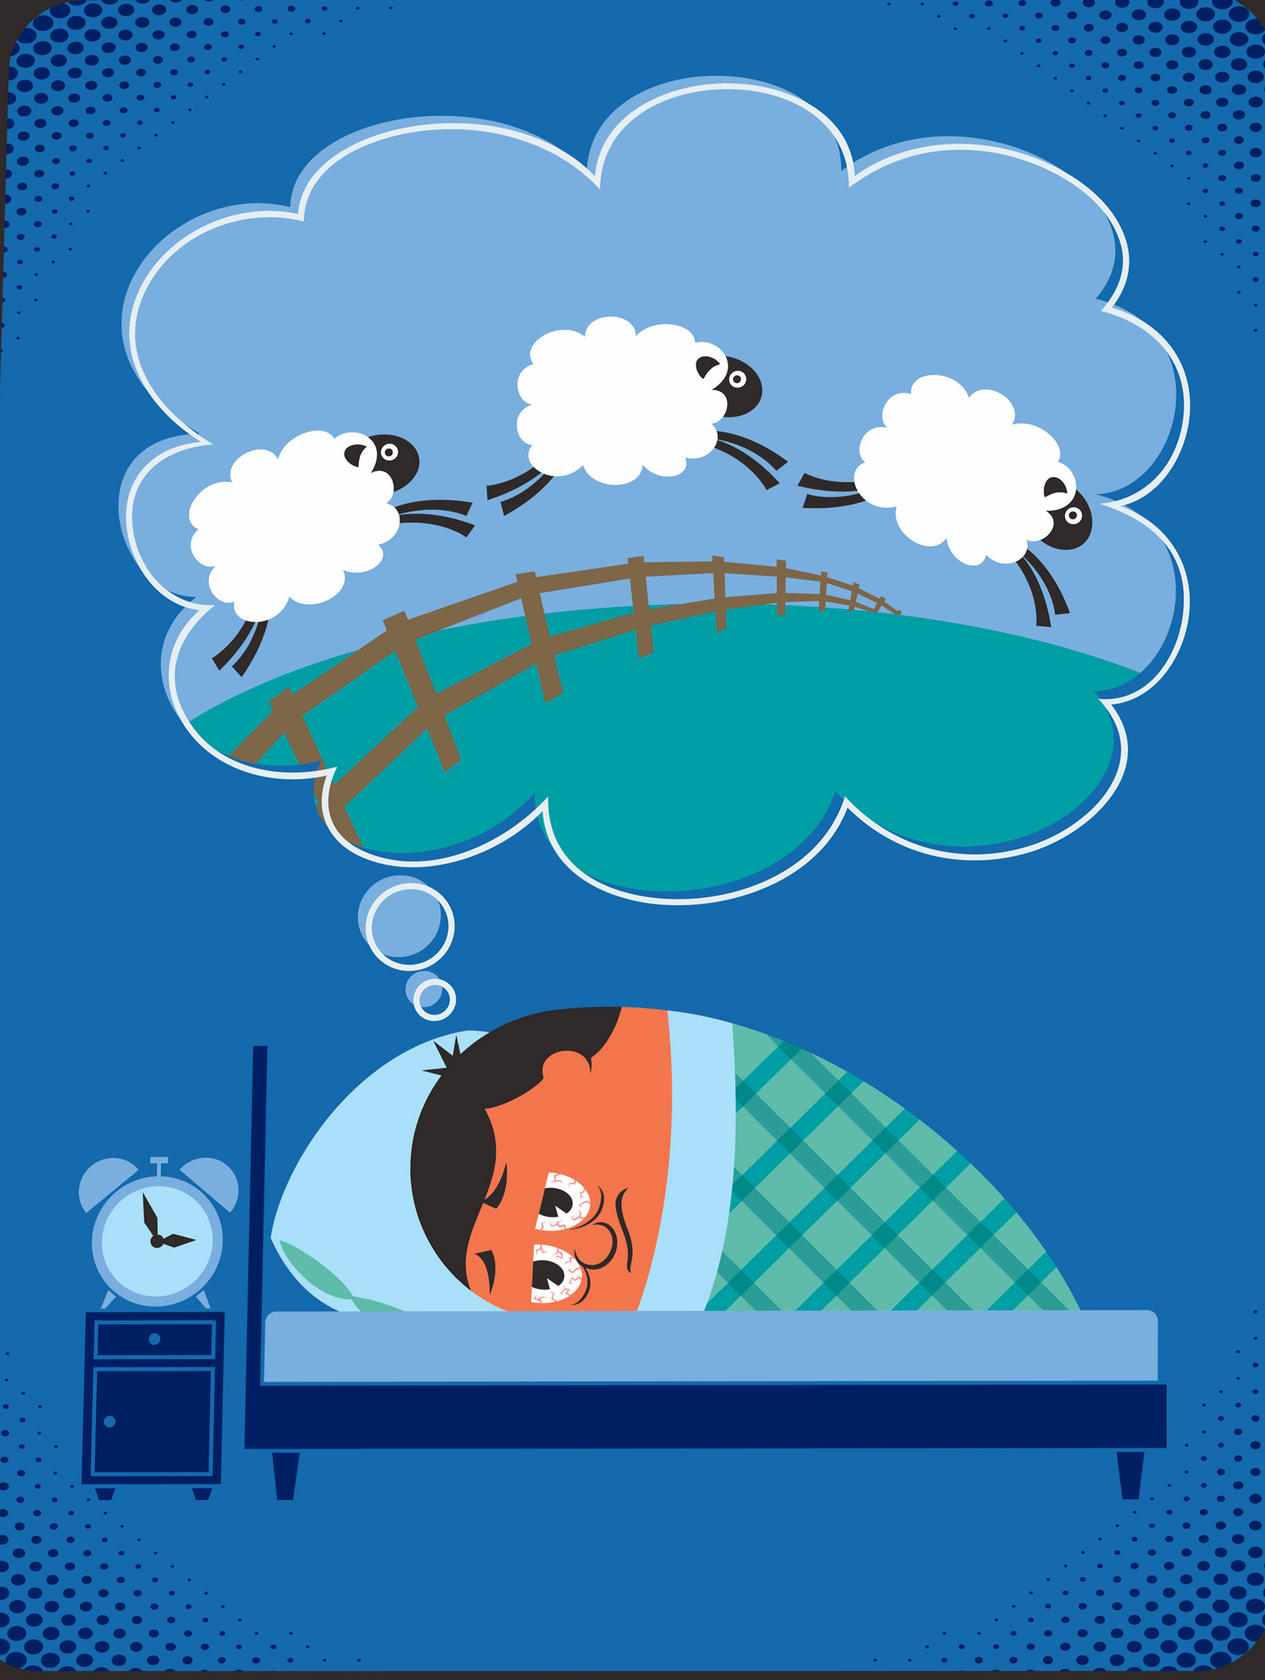 ancient chinese practice of qigong may help alleviate insomnia